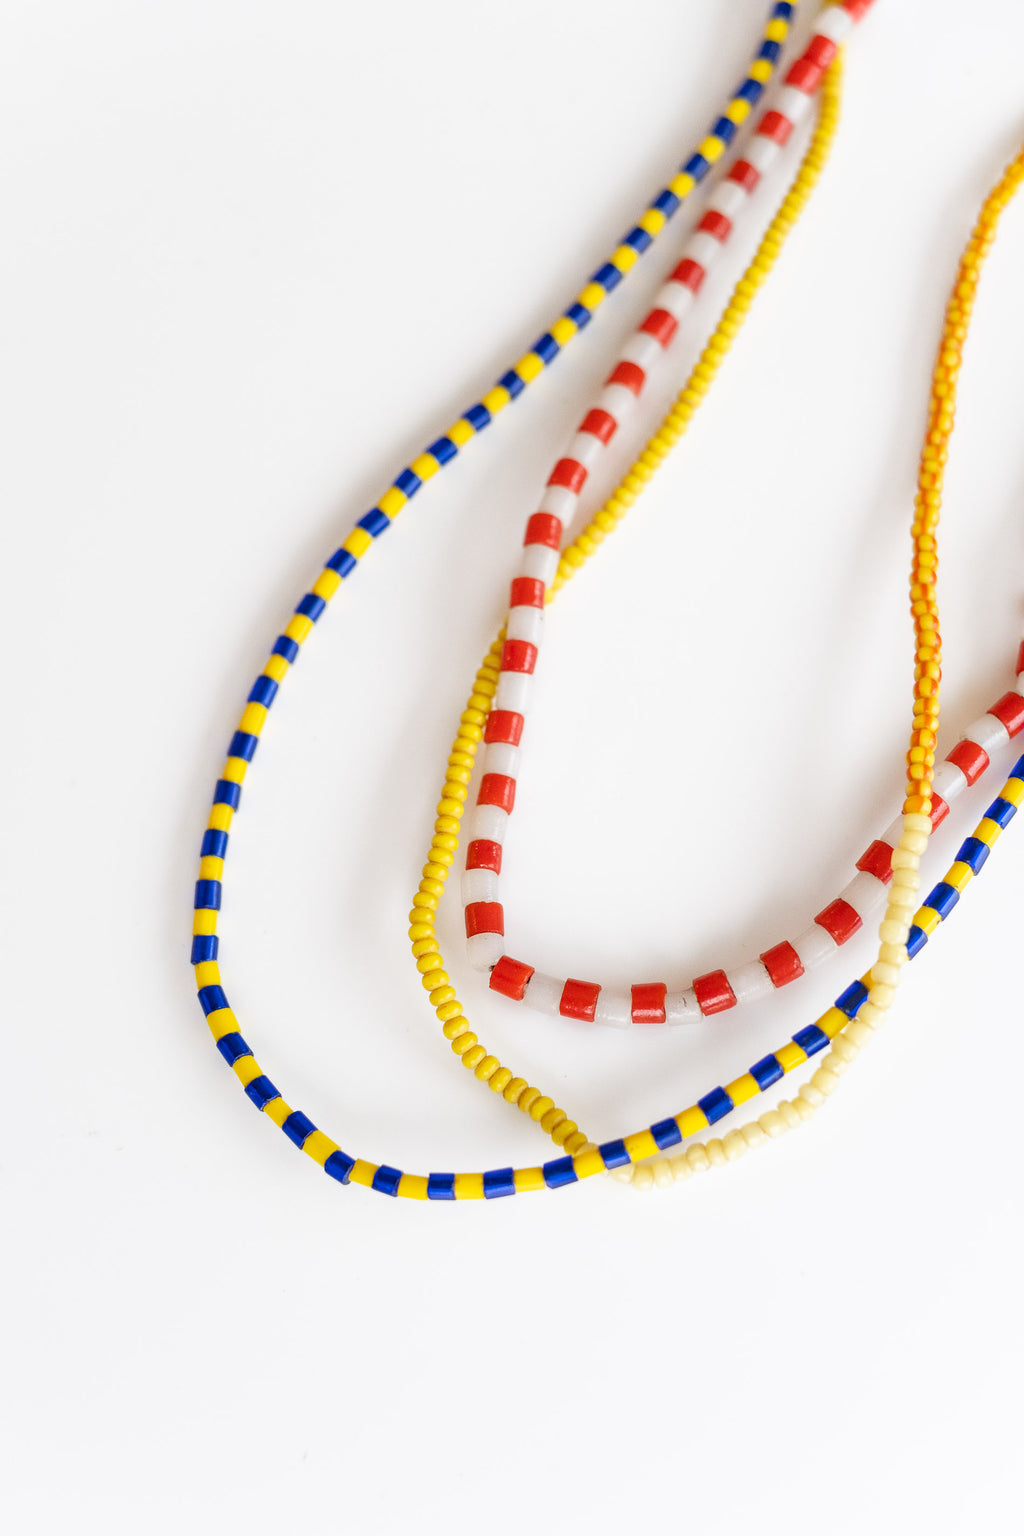 3-STRAND AFRICAN BEADS NO. 3